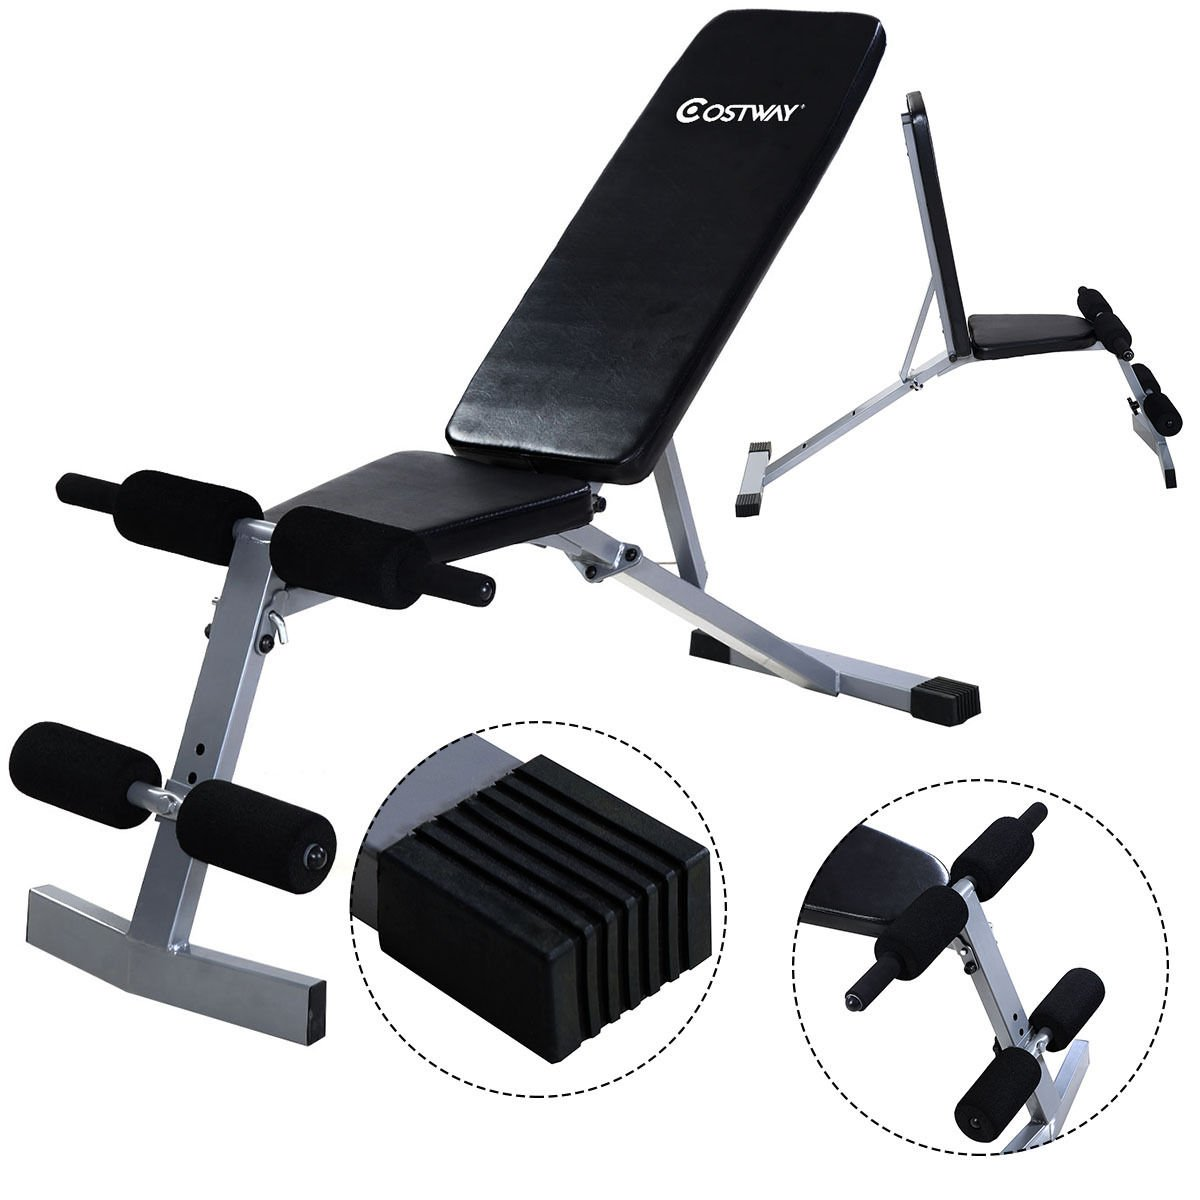 Bench Press Abs Part - 26: Amazon.com : Goplus Incline Sit Up Bench Foldable Slant Board Ab Crunch  Board Adjustable Workout Fitness Equipment : Sports U0026 Outdoors